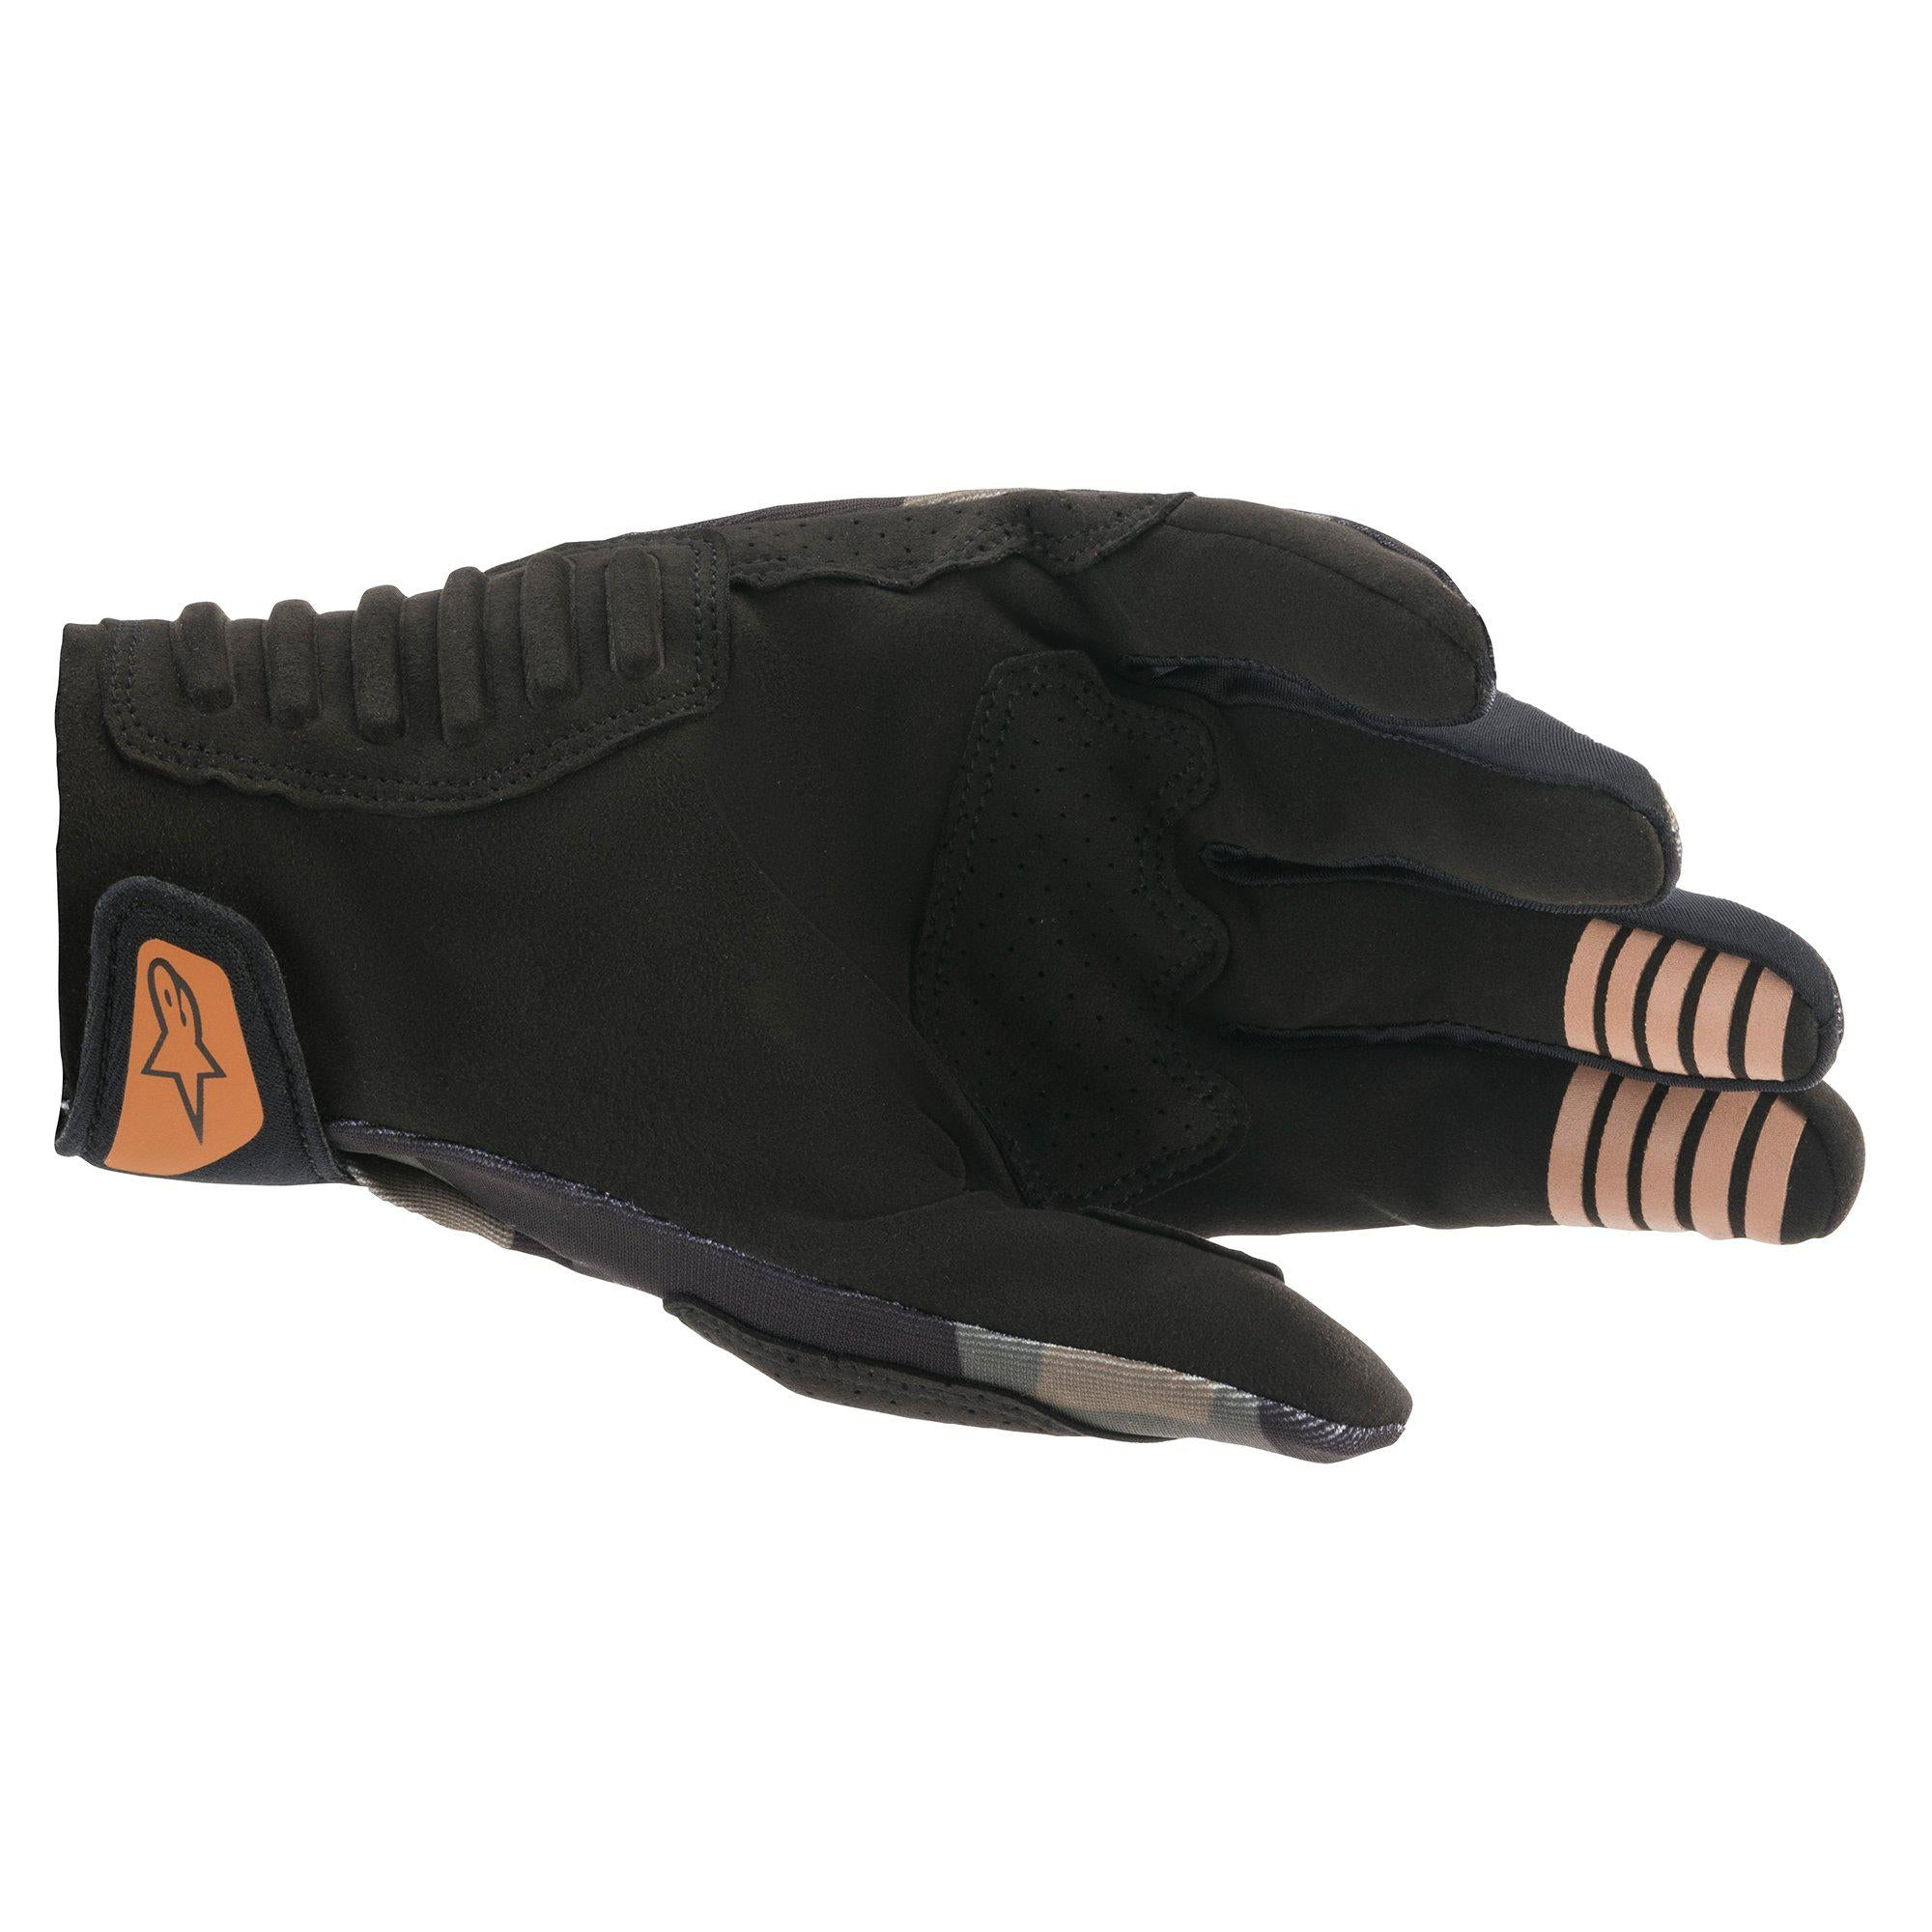 2021 SMX-E Offroad Gloves